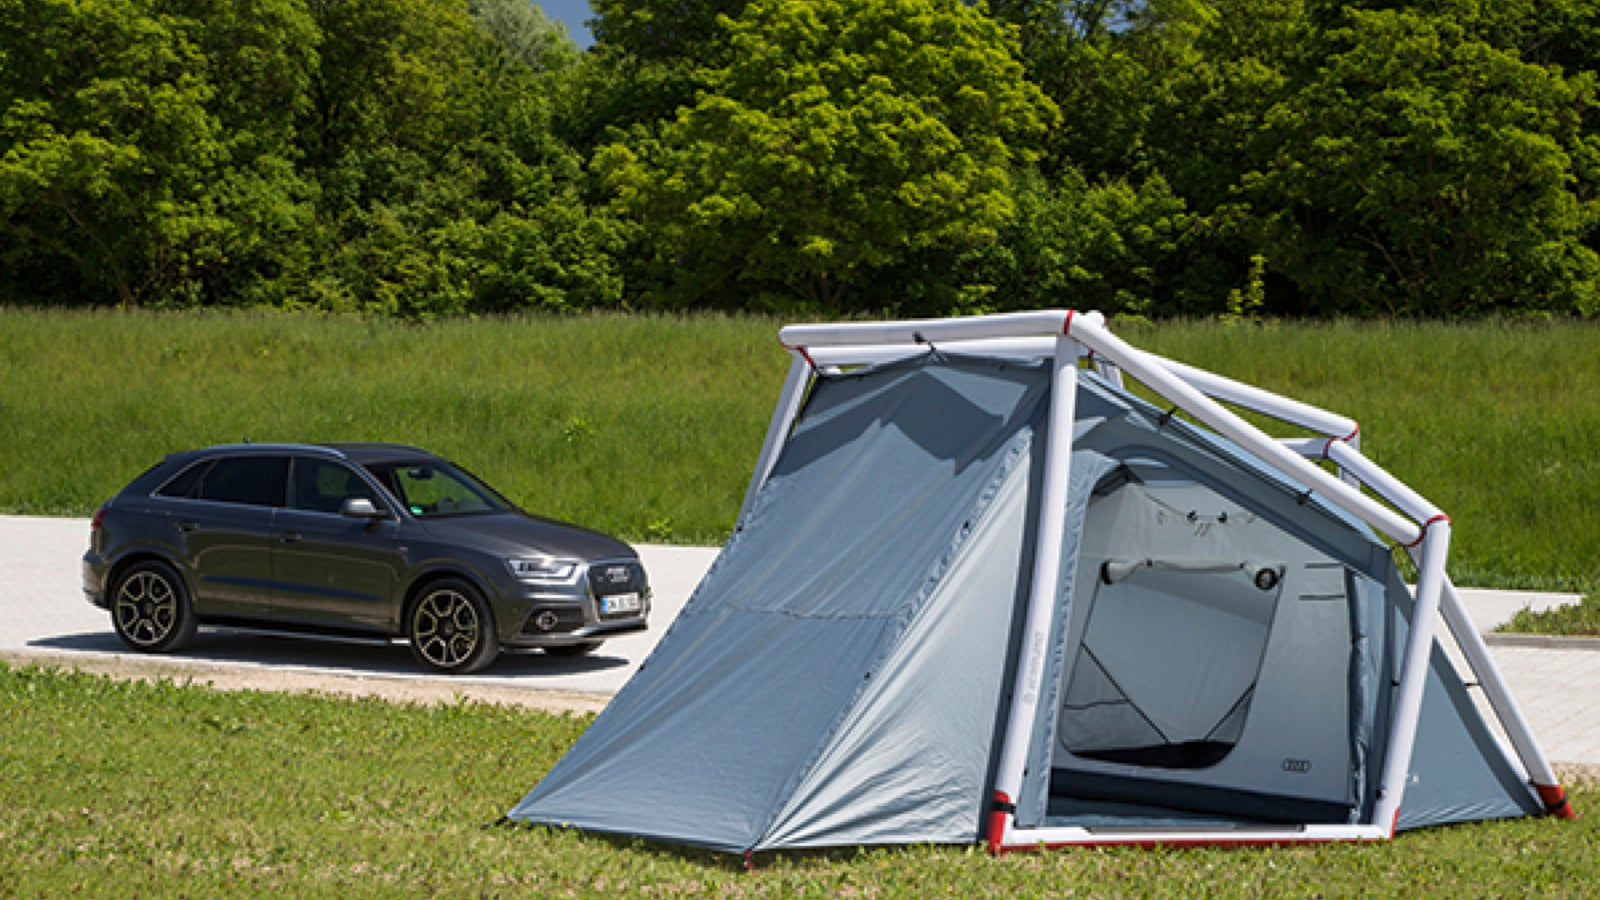 & Double The Size Of Your Audi Q3 With This Space-Age Inflatable Tent